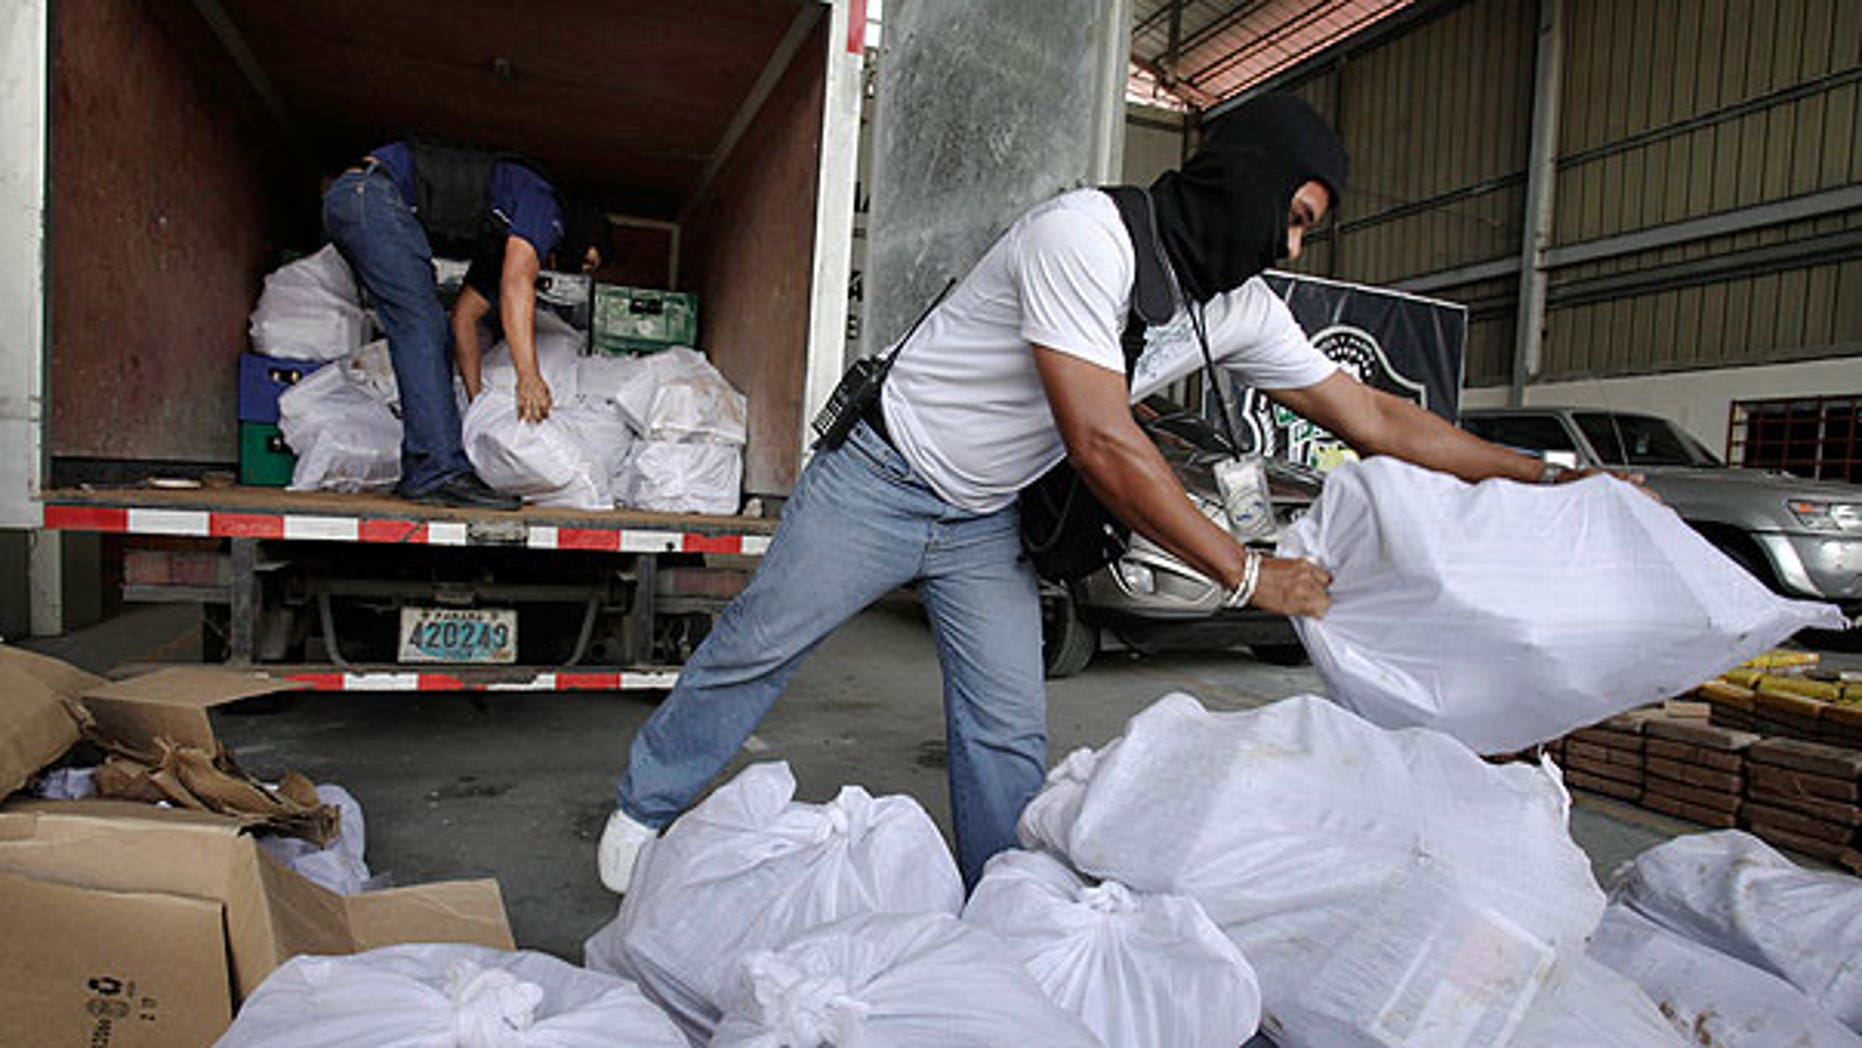 Aug. 1: Anti-narcotic agents unload sacks containing packages of heroin during a press conference in Panama City.